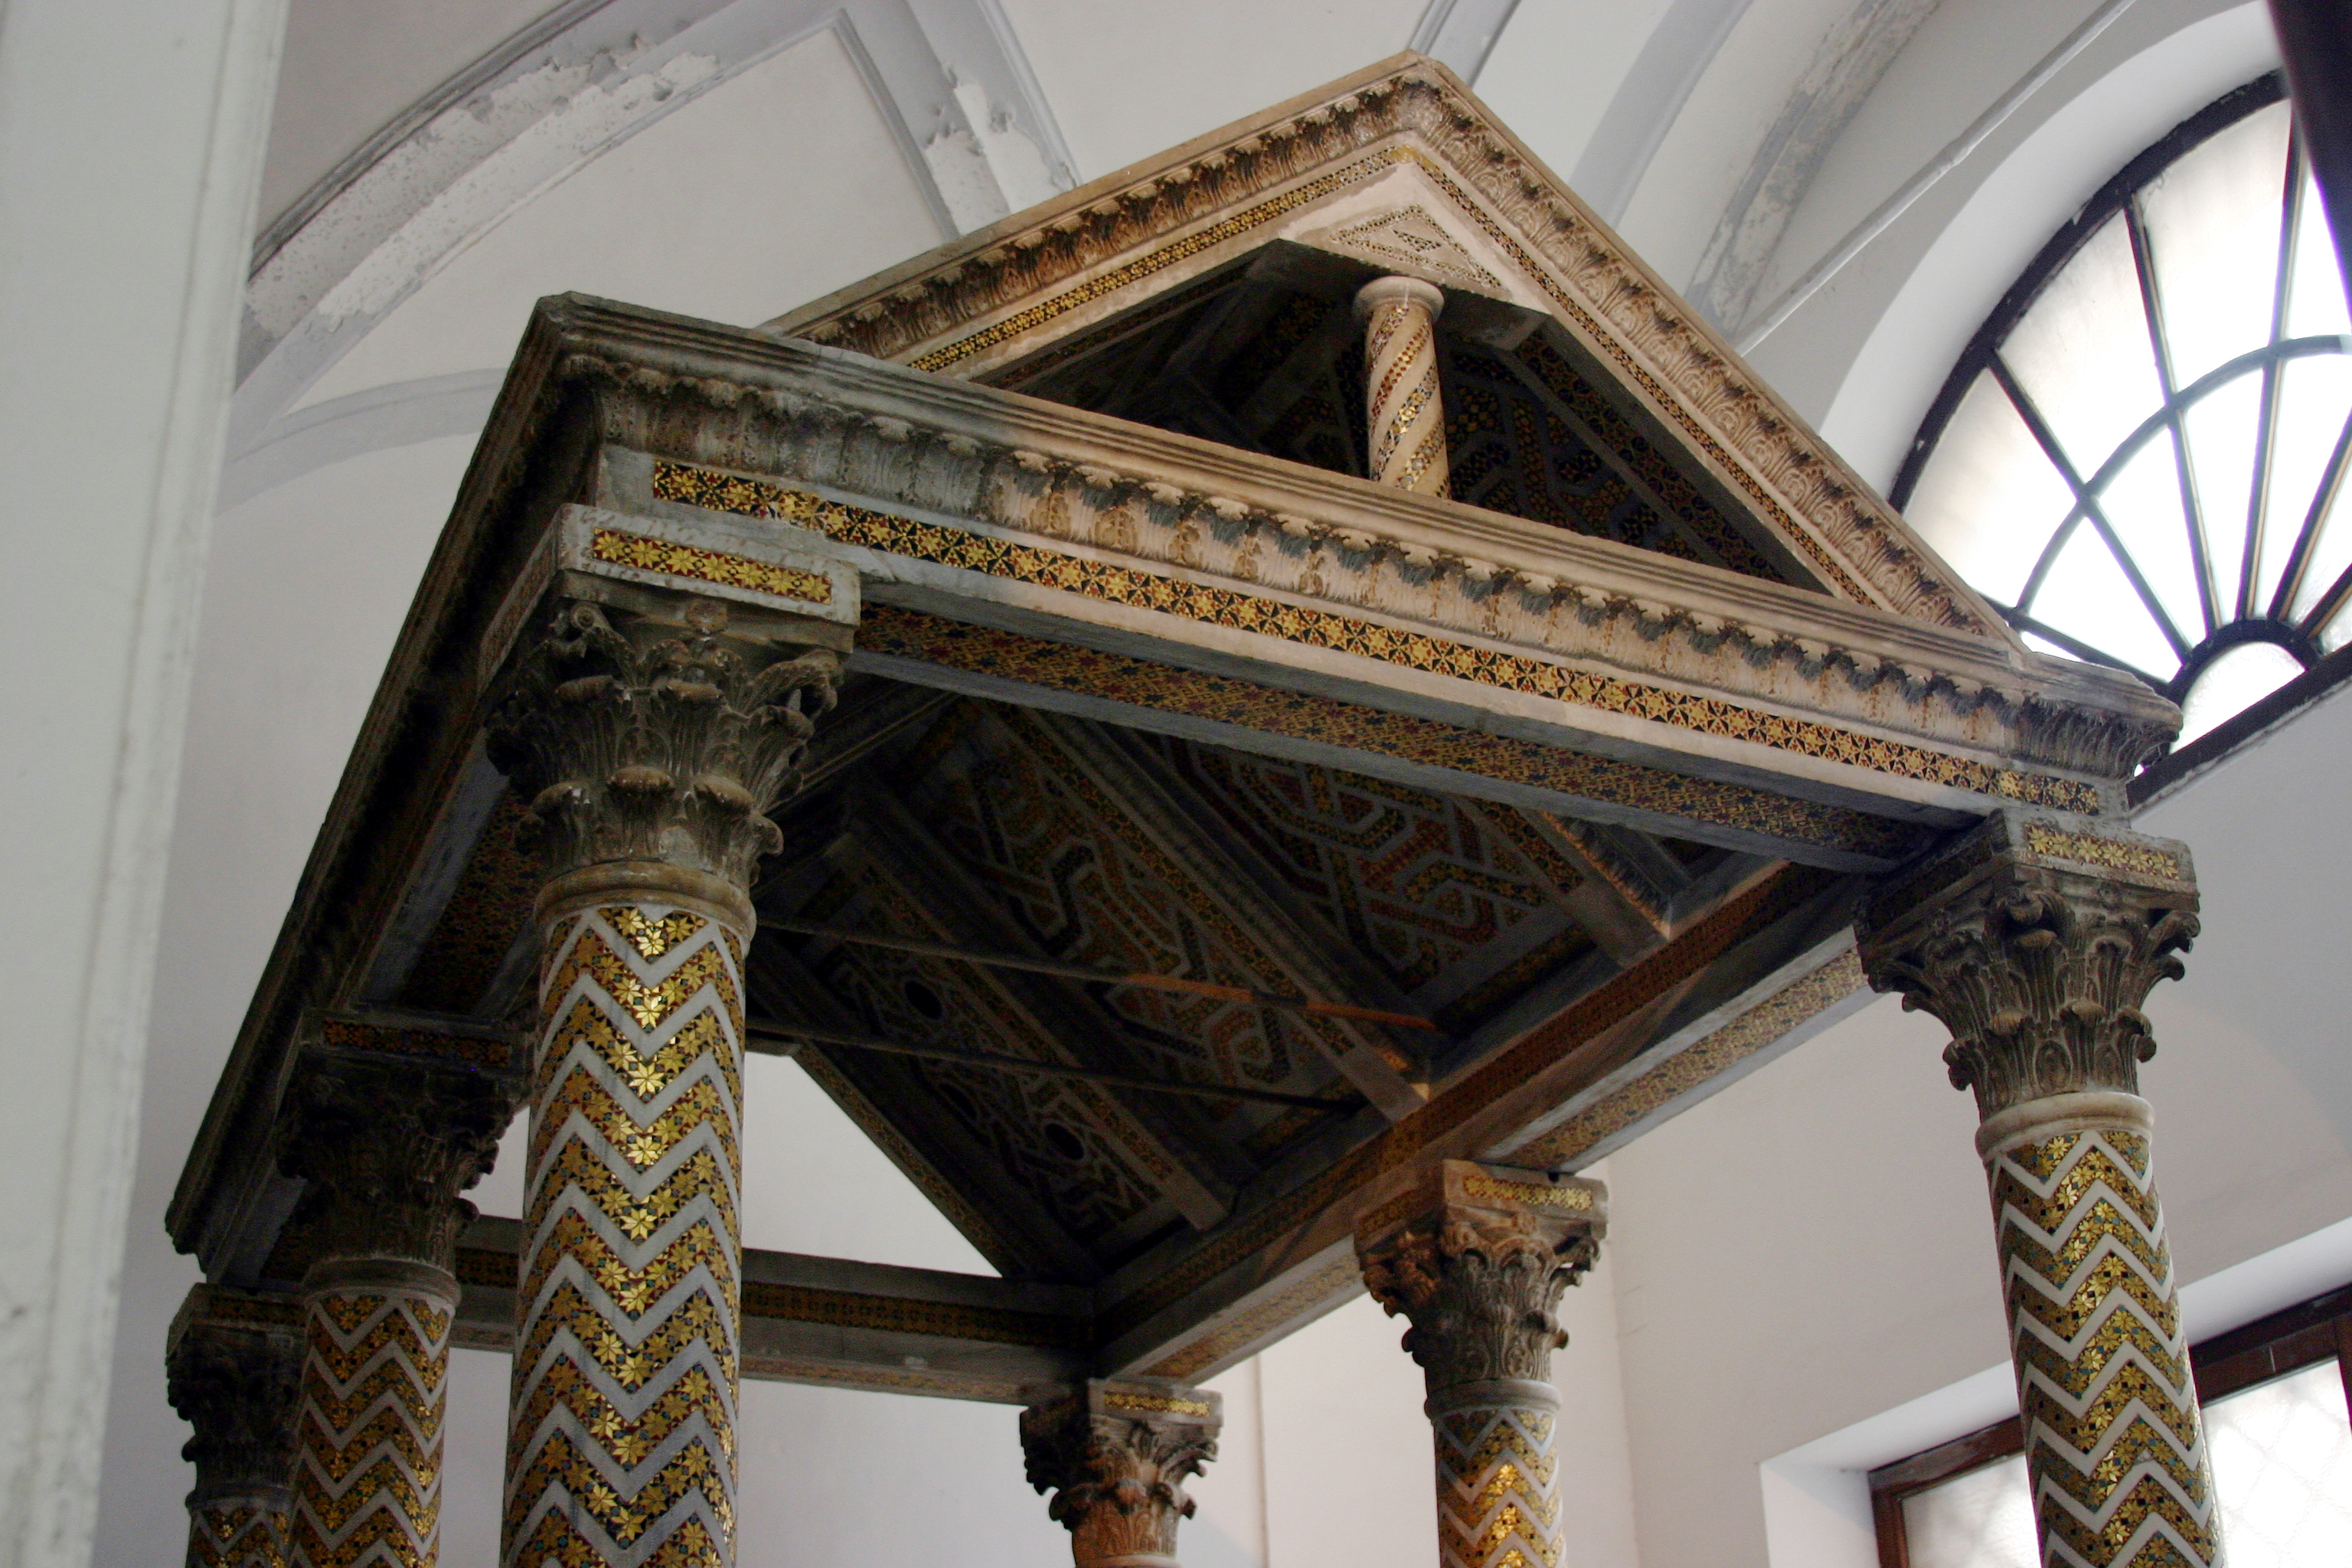 filecanopy tomb of constance of hauteville cathedral of palermo italy 2015 - Open Canopy 2015